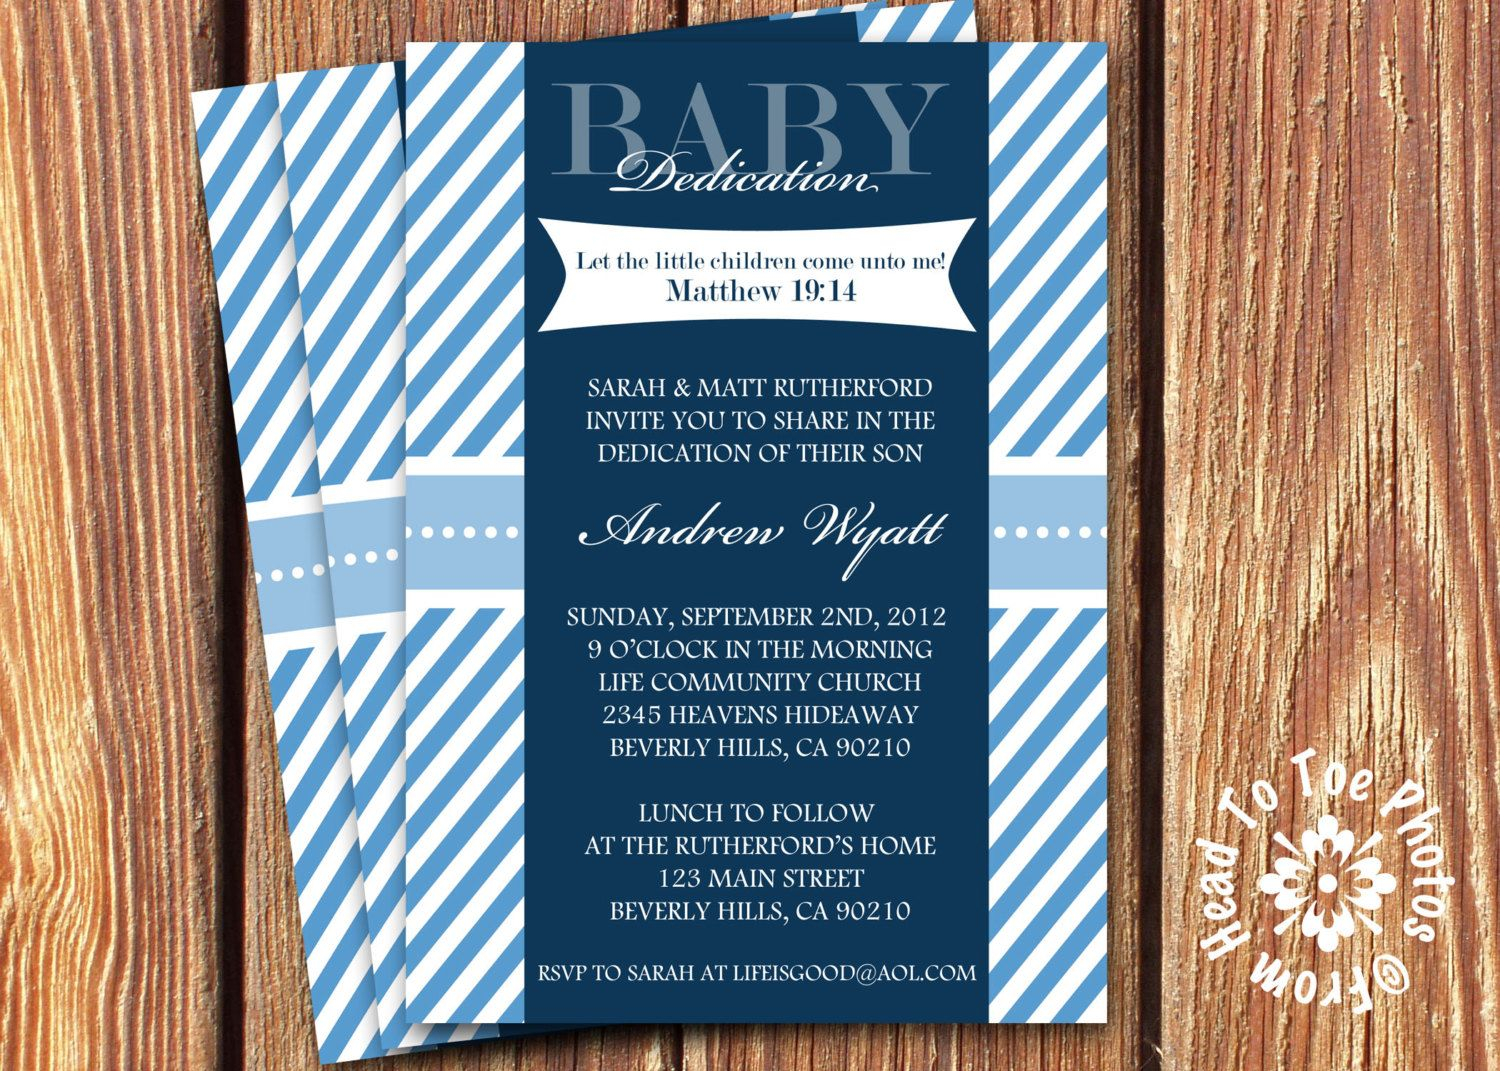 17 Best images about baby dedication invitations on Pinterest ...